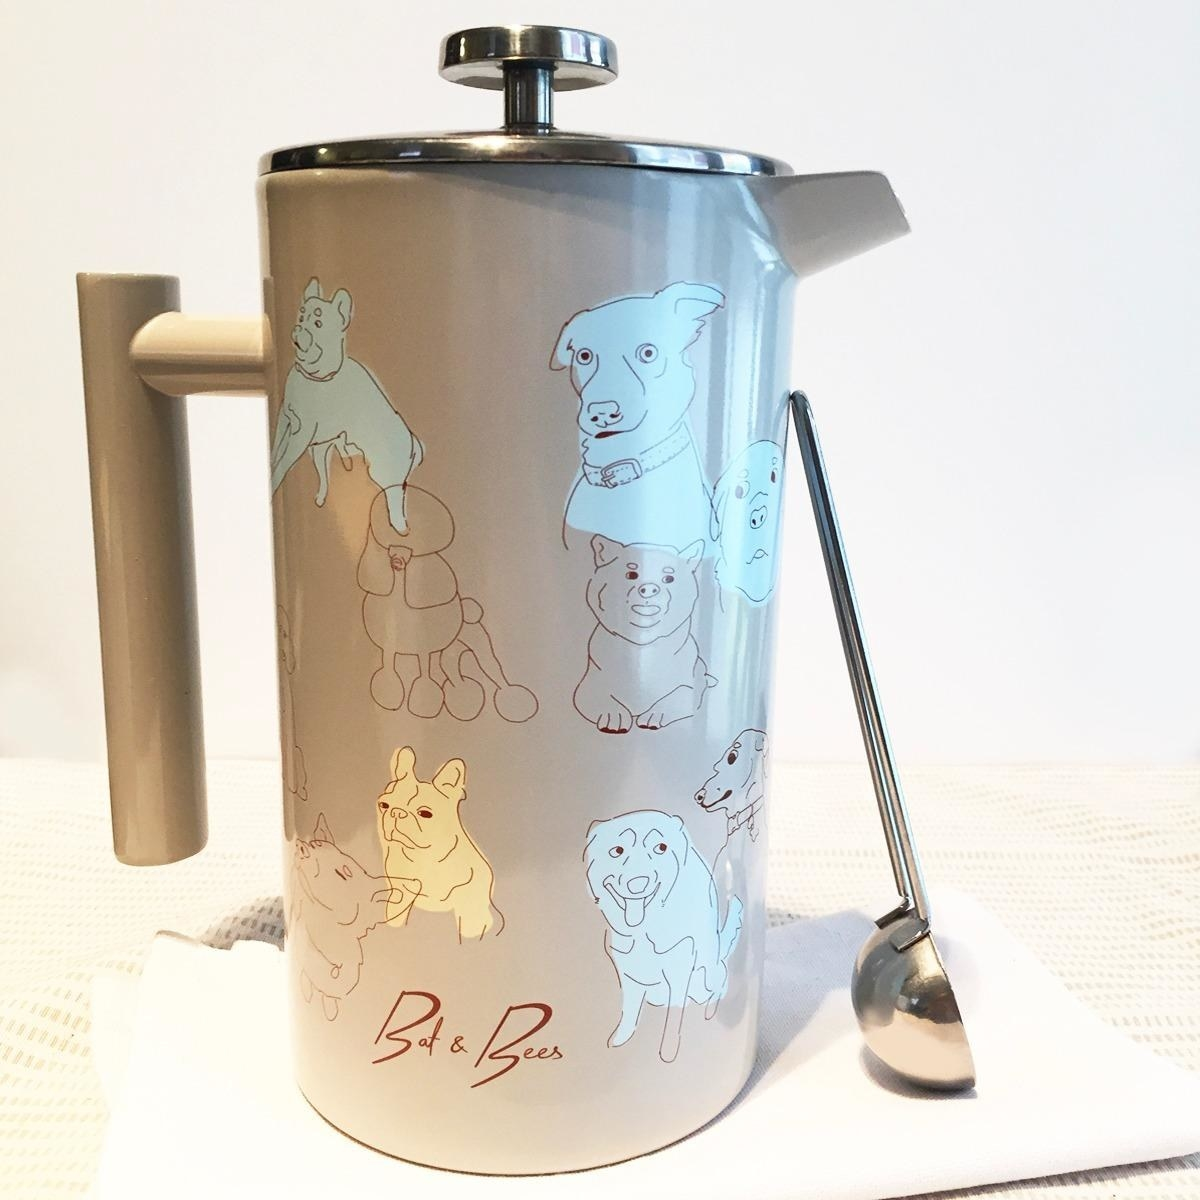 tan opaque french press with blue and yellow drawings of dogs